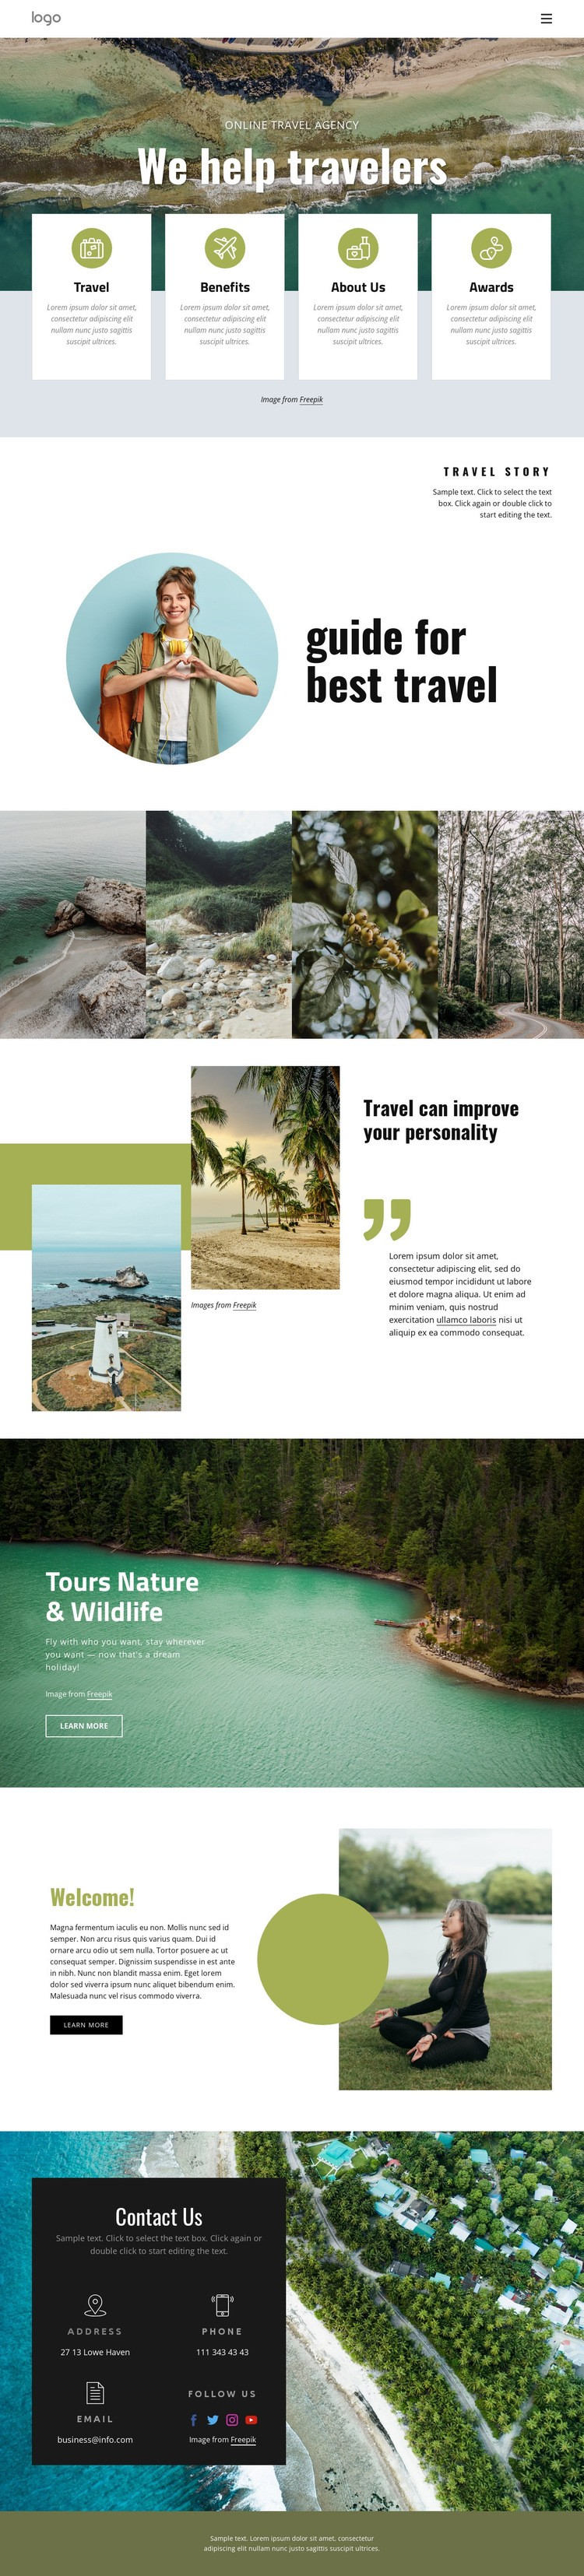 We help manage your trip Web Page Designer